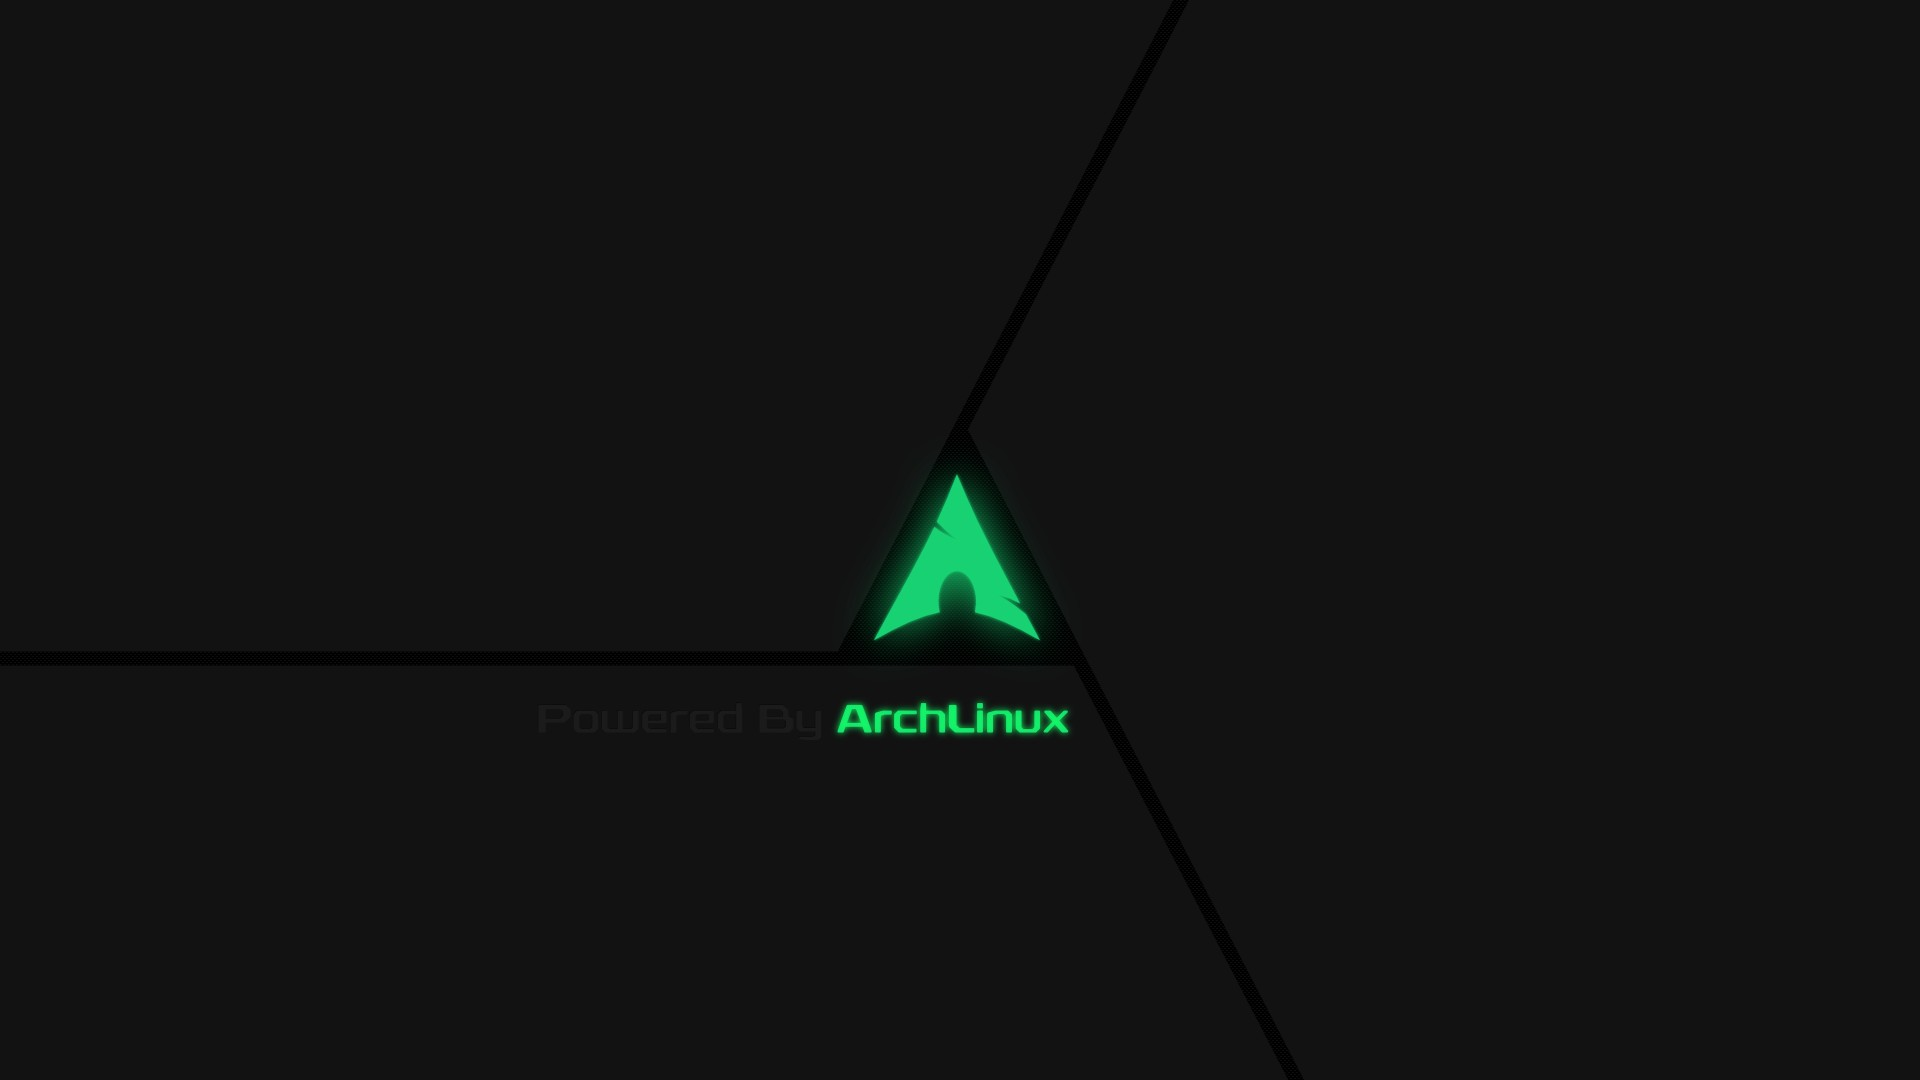 Arch Linux Wallpaper 28